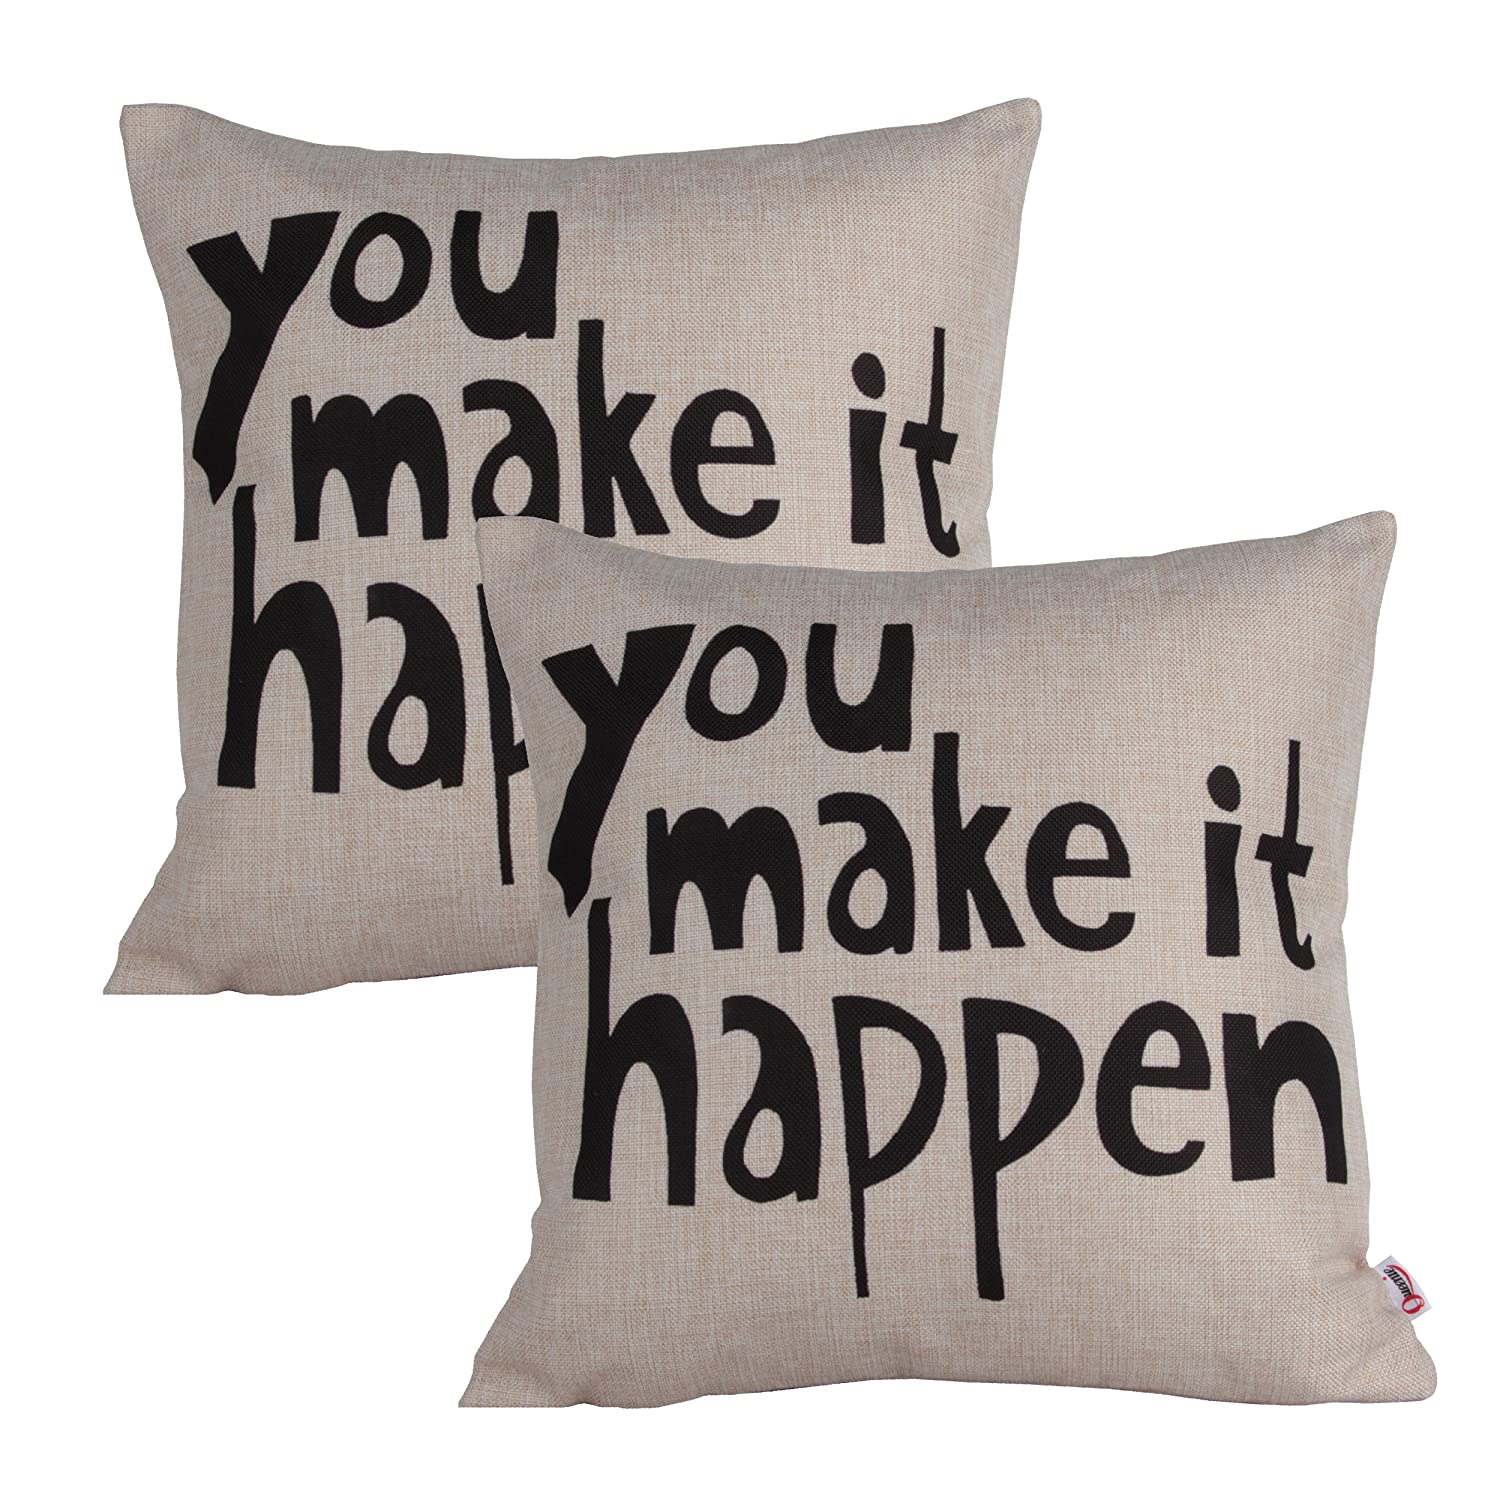 Inspirational Words Quotable Quotes Cotton Linen Decorative throw pillow